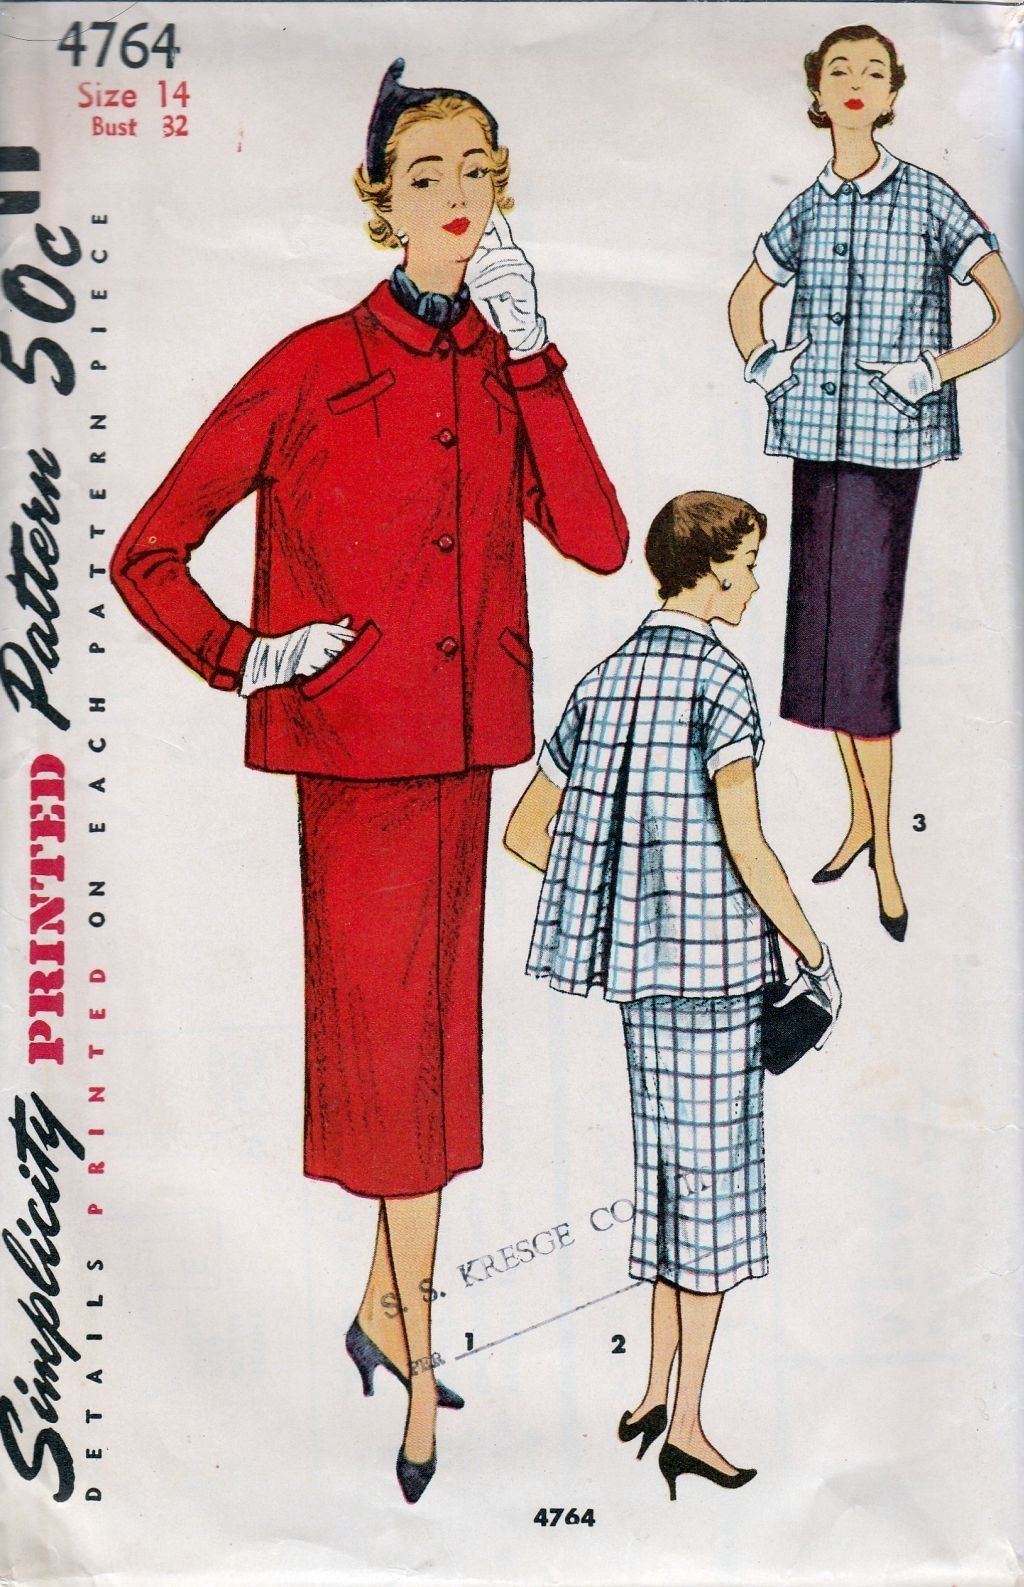 Simplicity 4764 Vintage 1950's Sewing Pattern Maternity Suit Jacket Inverted Pleat Skirt - VintageStitching - Vintage Sewing Patterns